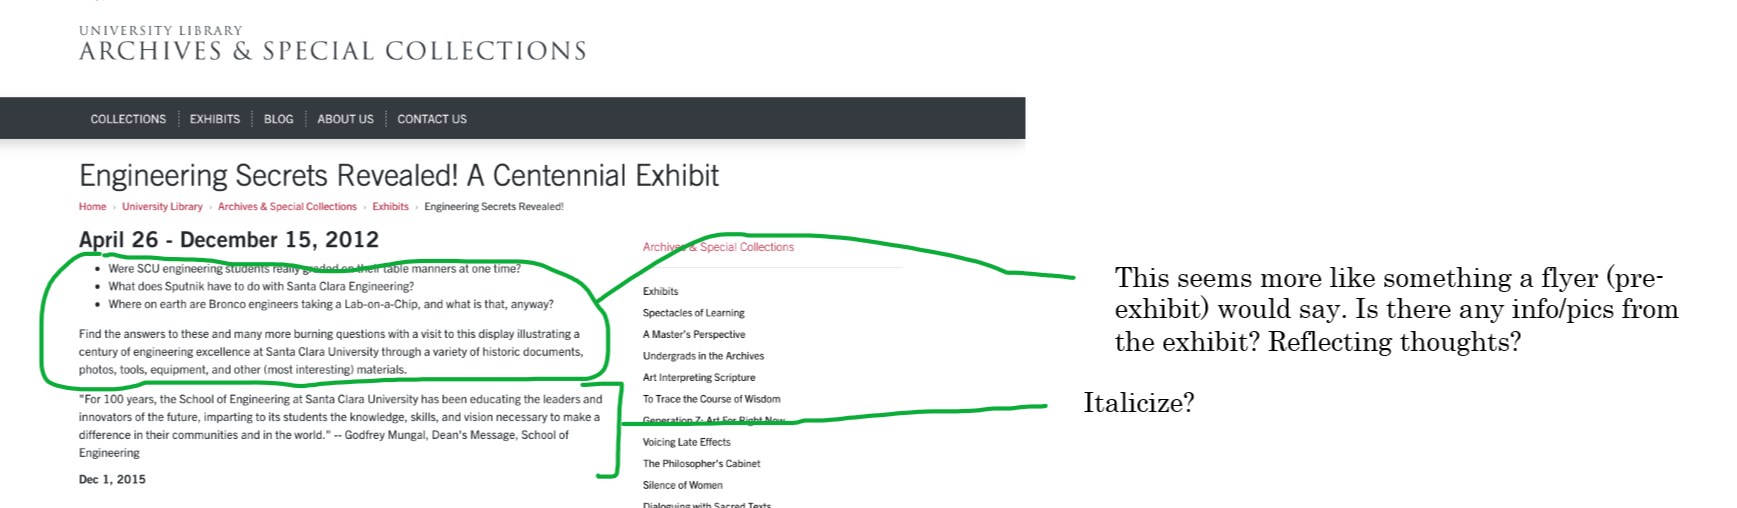 Annotated Exhibit page. The exhibit is called Engineering Secrets Revealed! A Centennial Exhibit